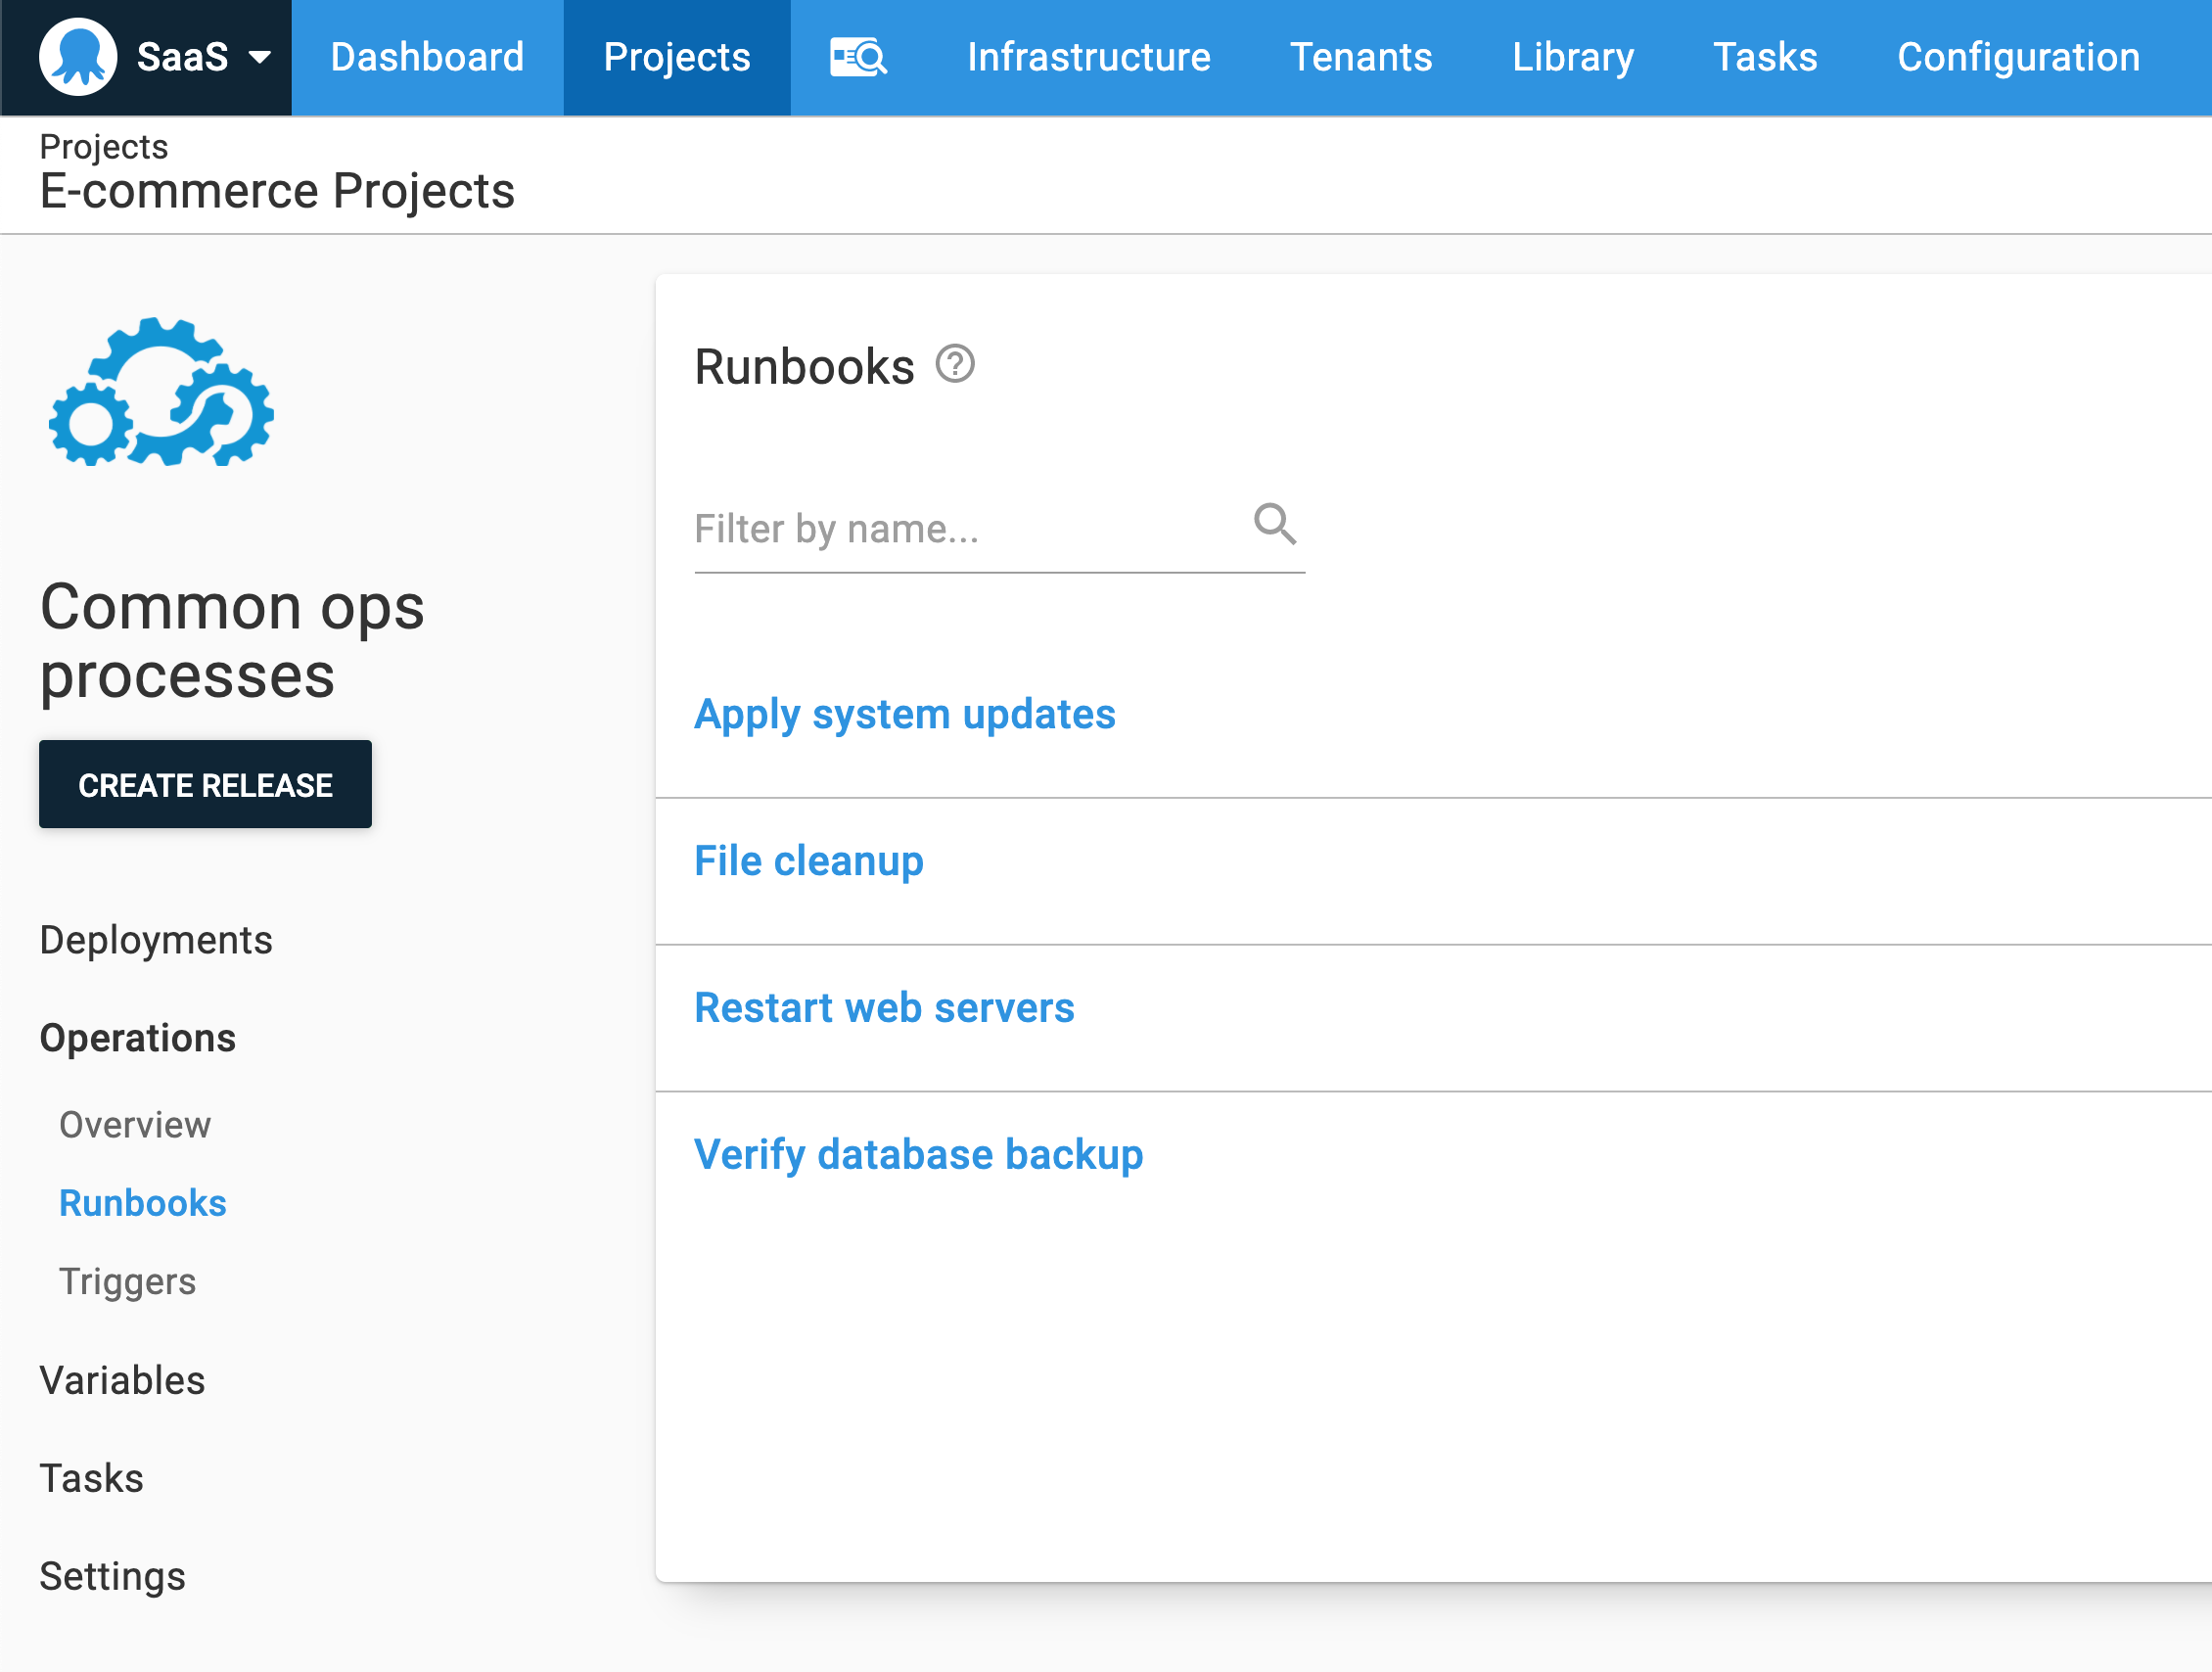 Runbook only projects